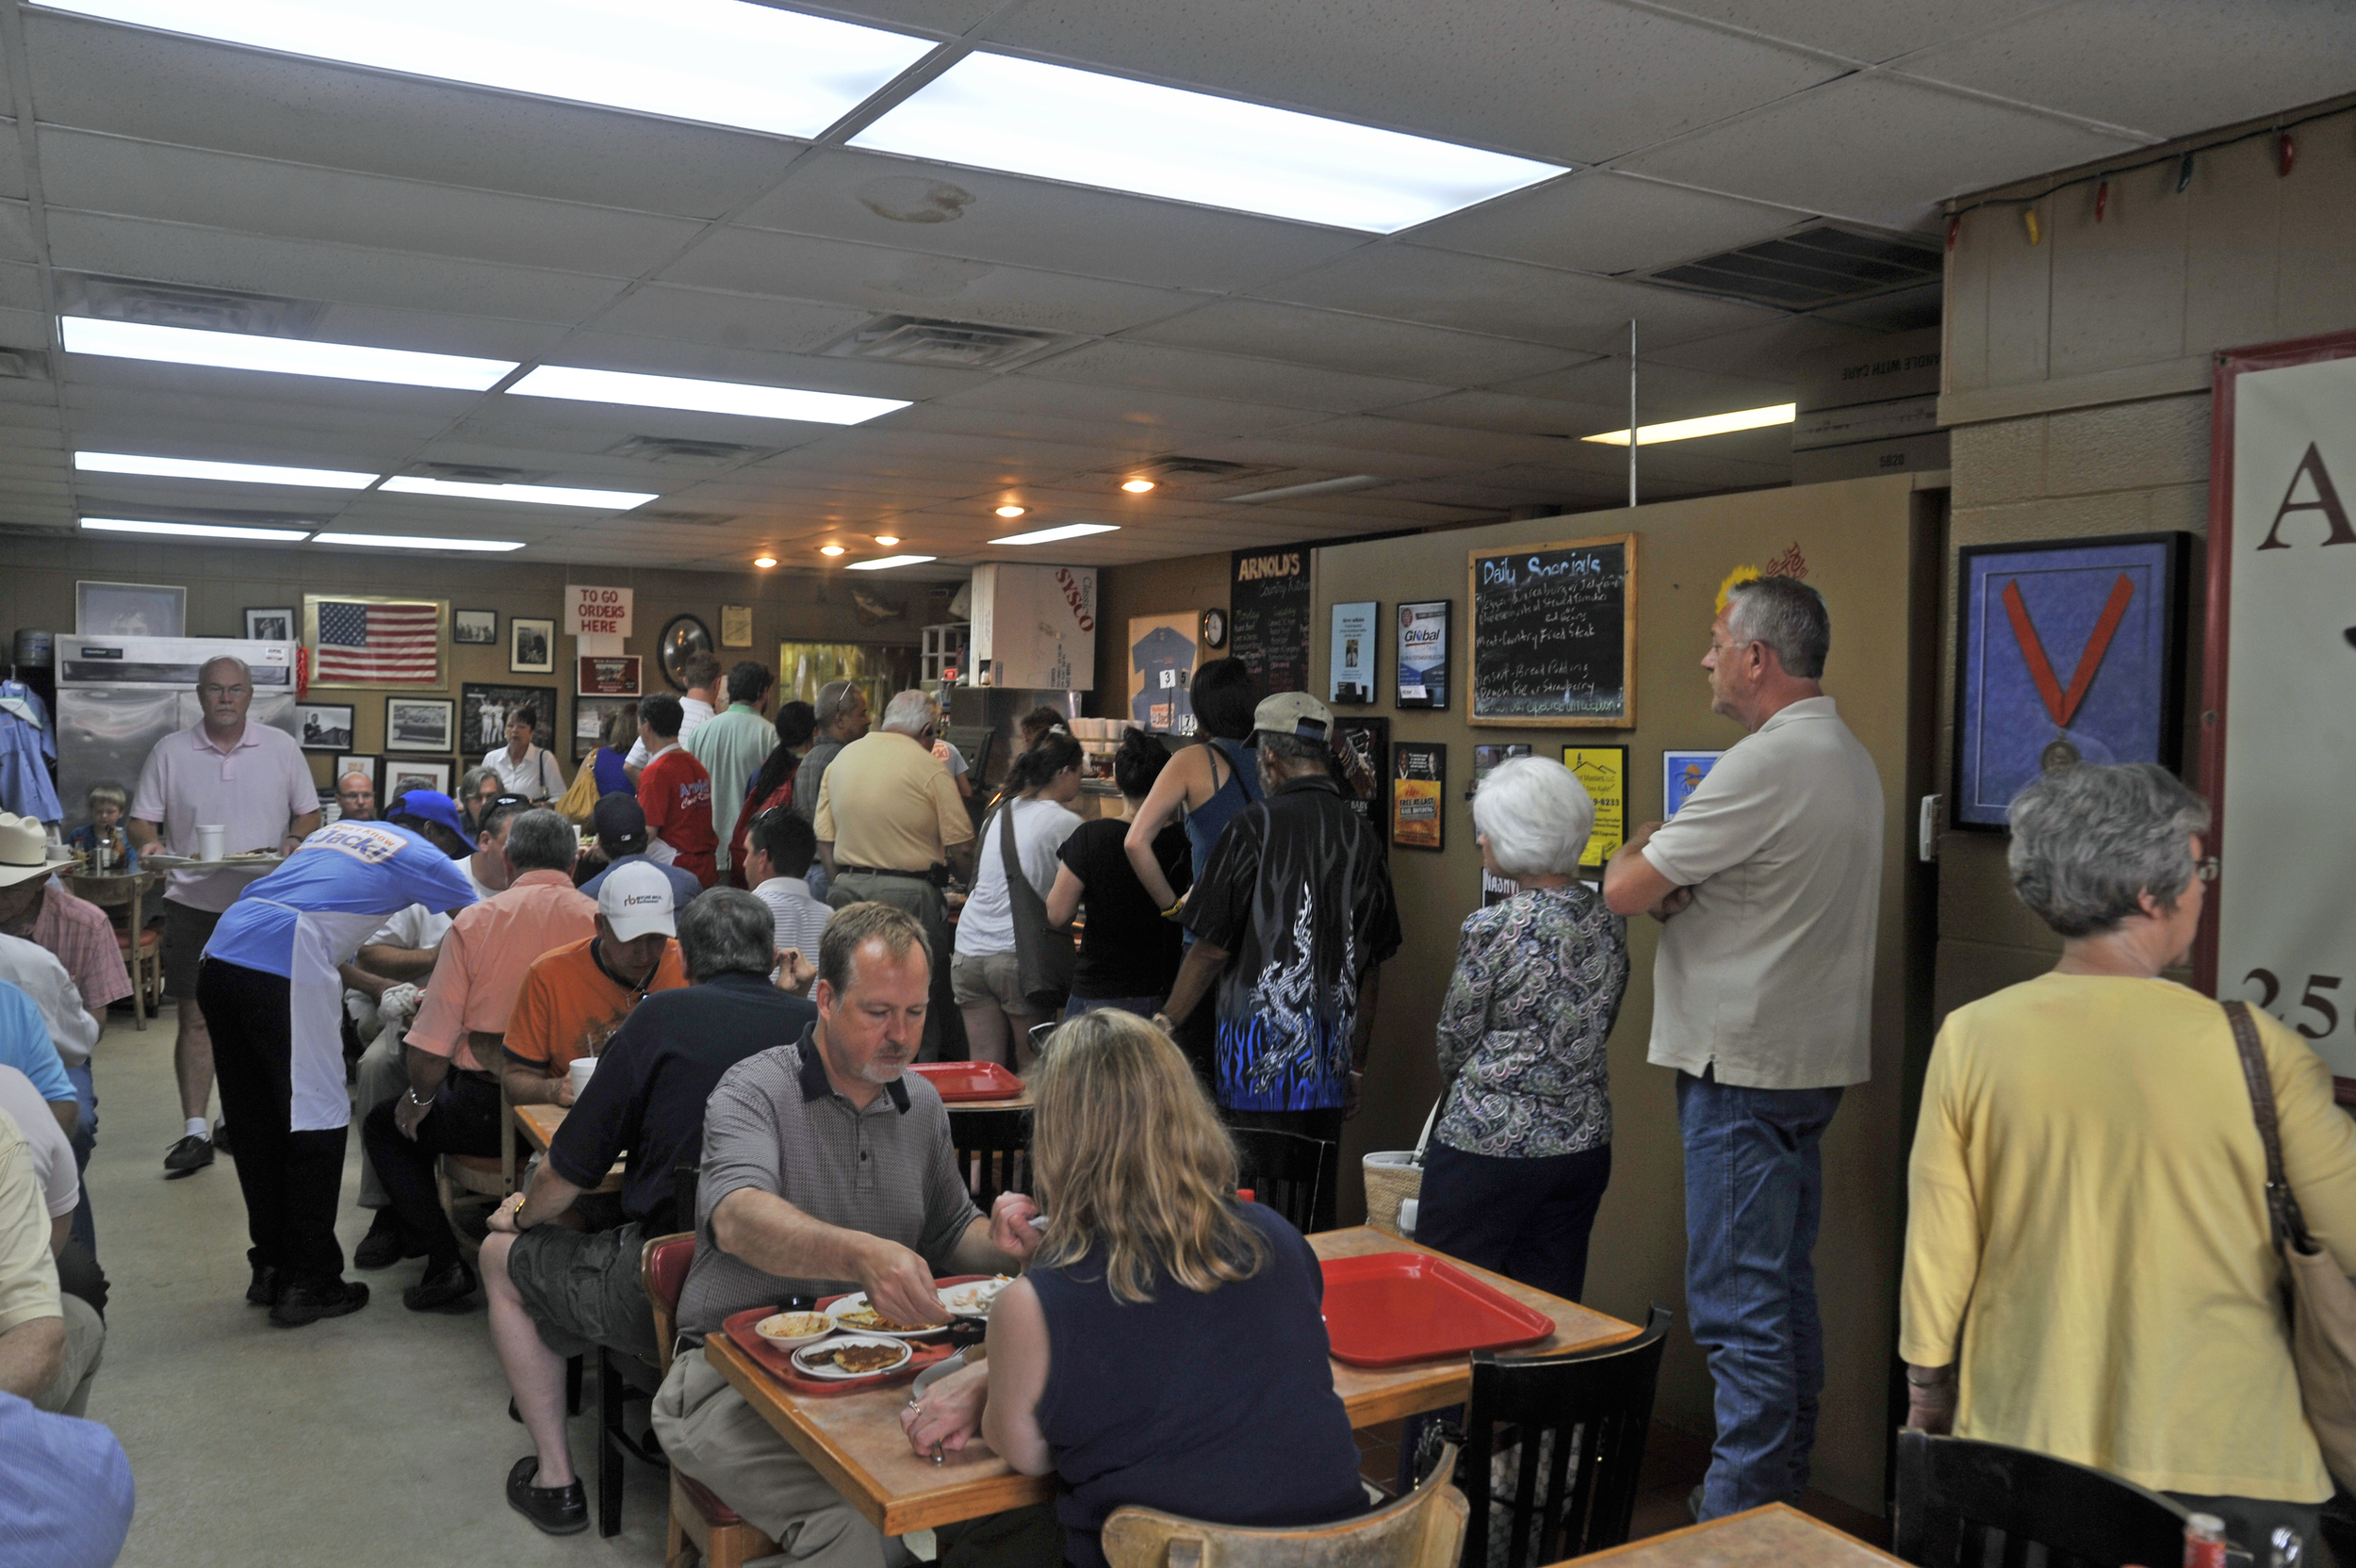 _DSC0996 In line at Arnolds classic meat n three copy.jpg